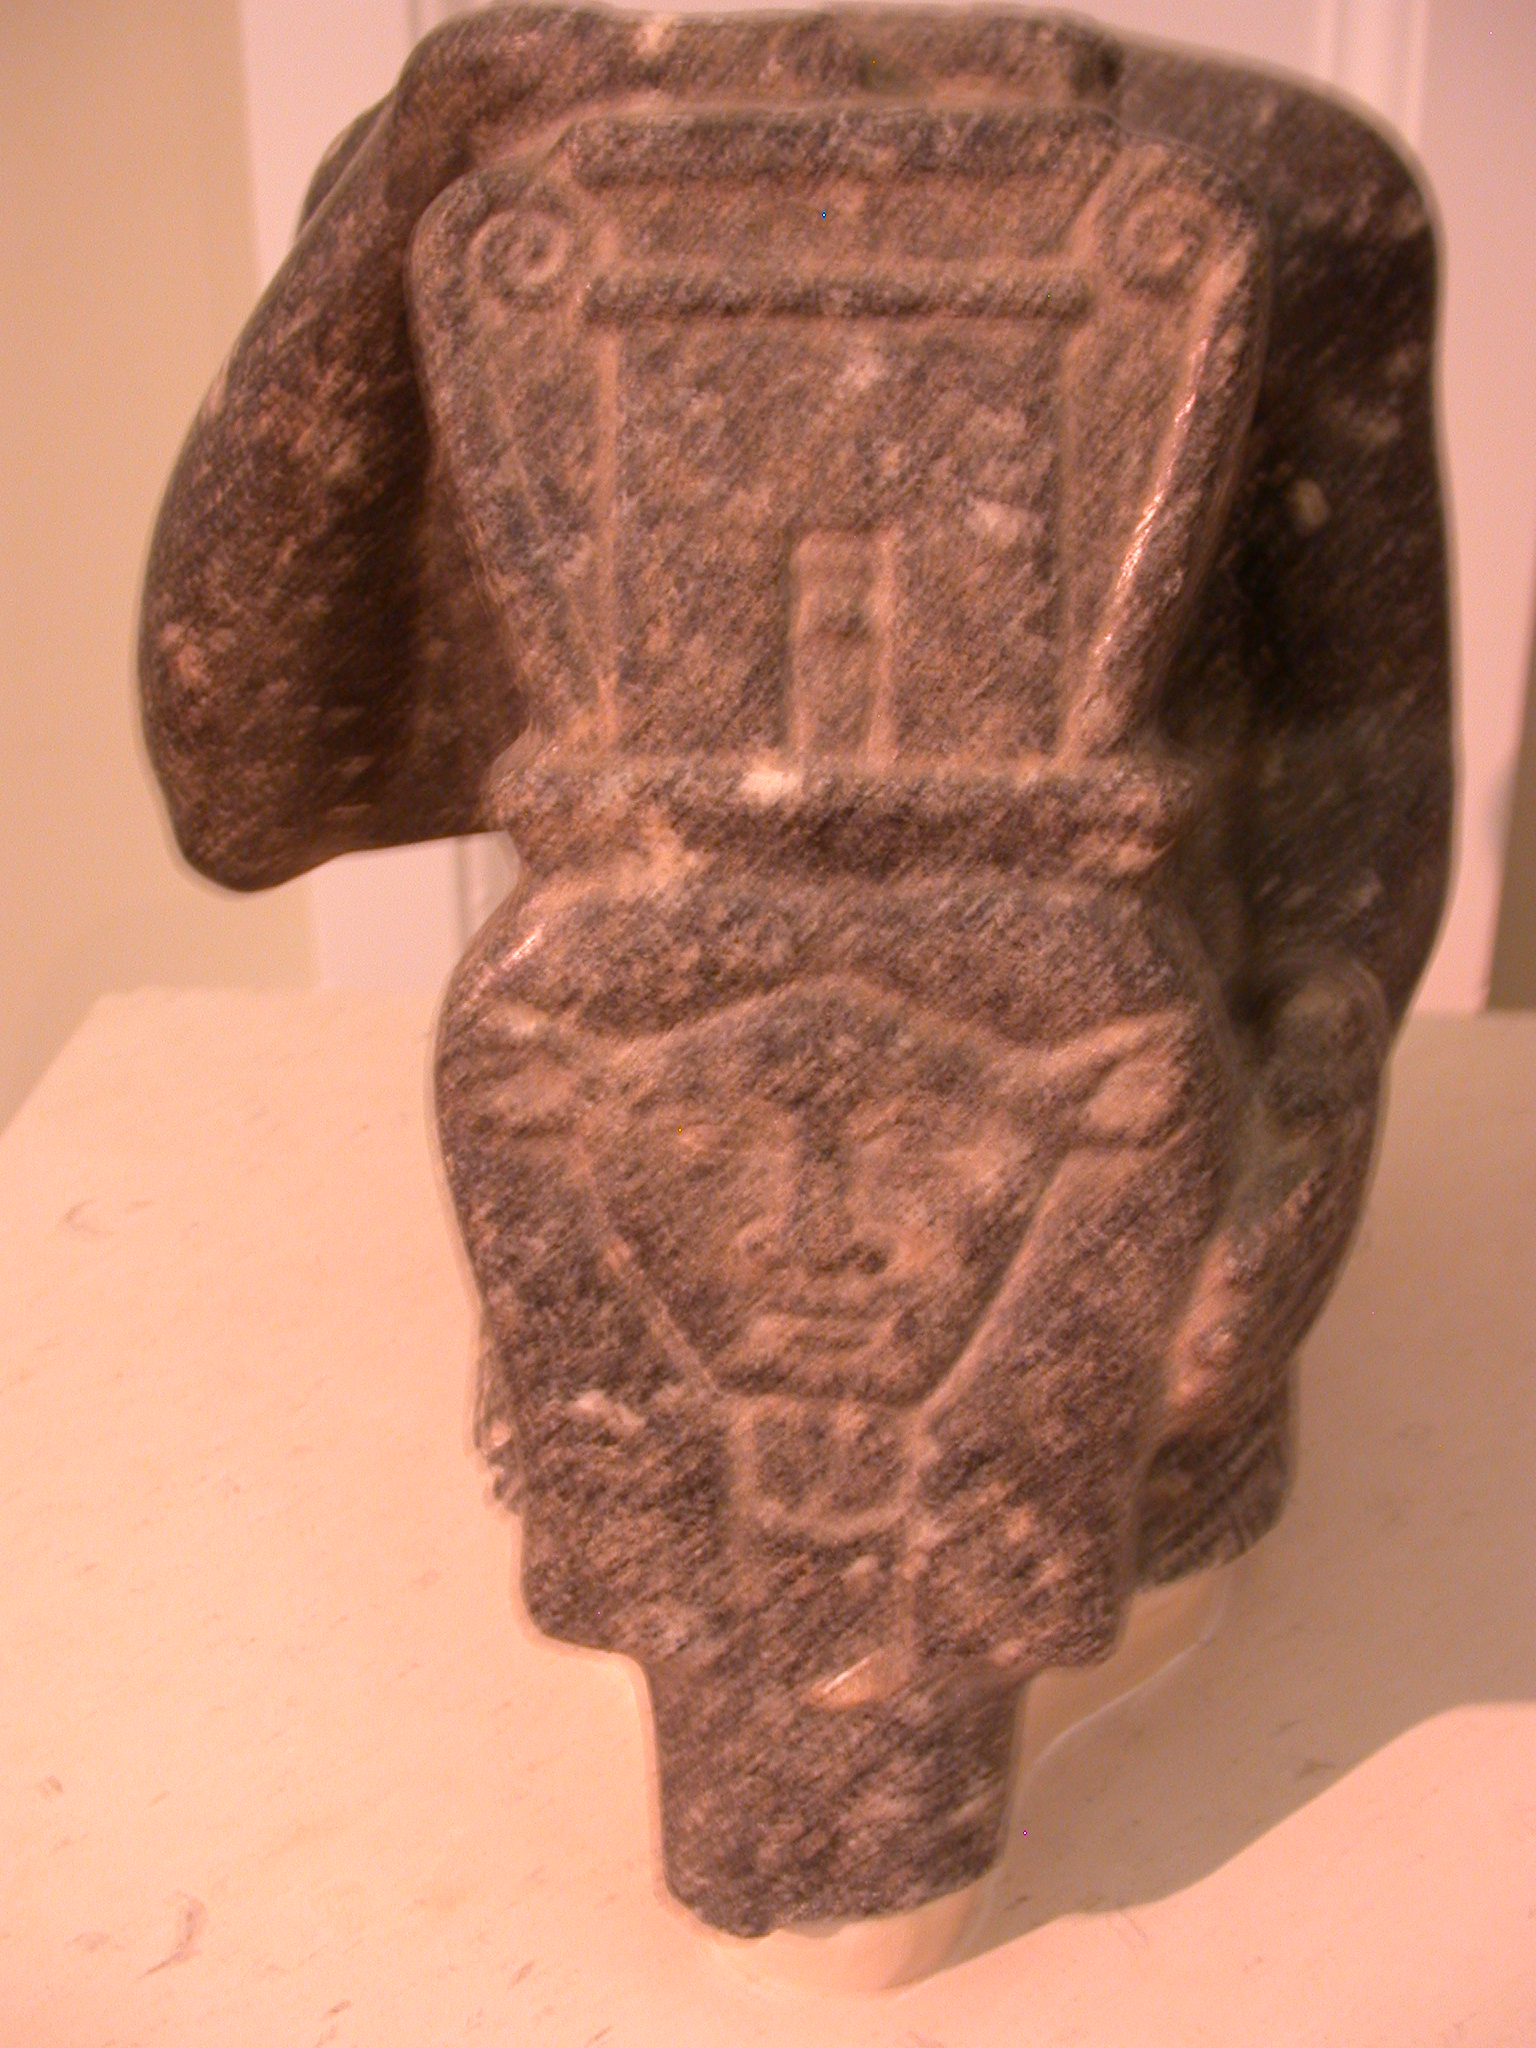 Statue of Priest Holding Large Sistrum in Form of Hathor, Granite, Late Period, 746-336 BCE, Mendes, Egypt, in Fitzwilliam Museum, Cambridge, England